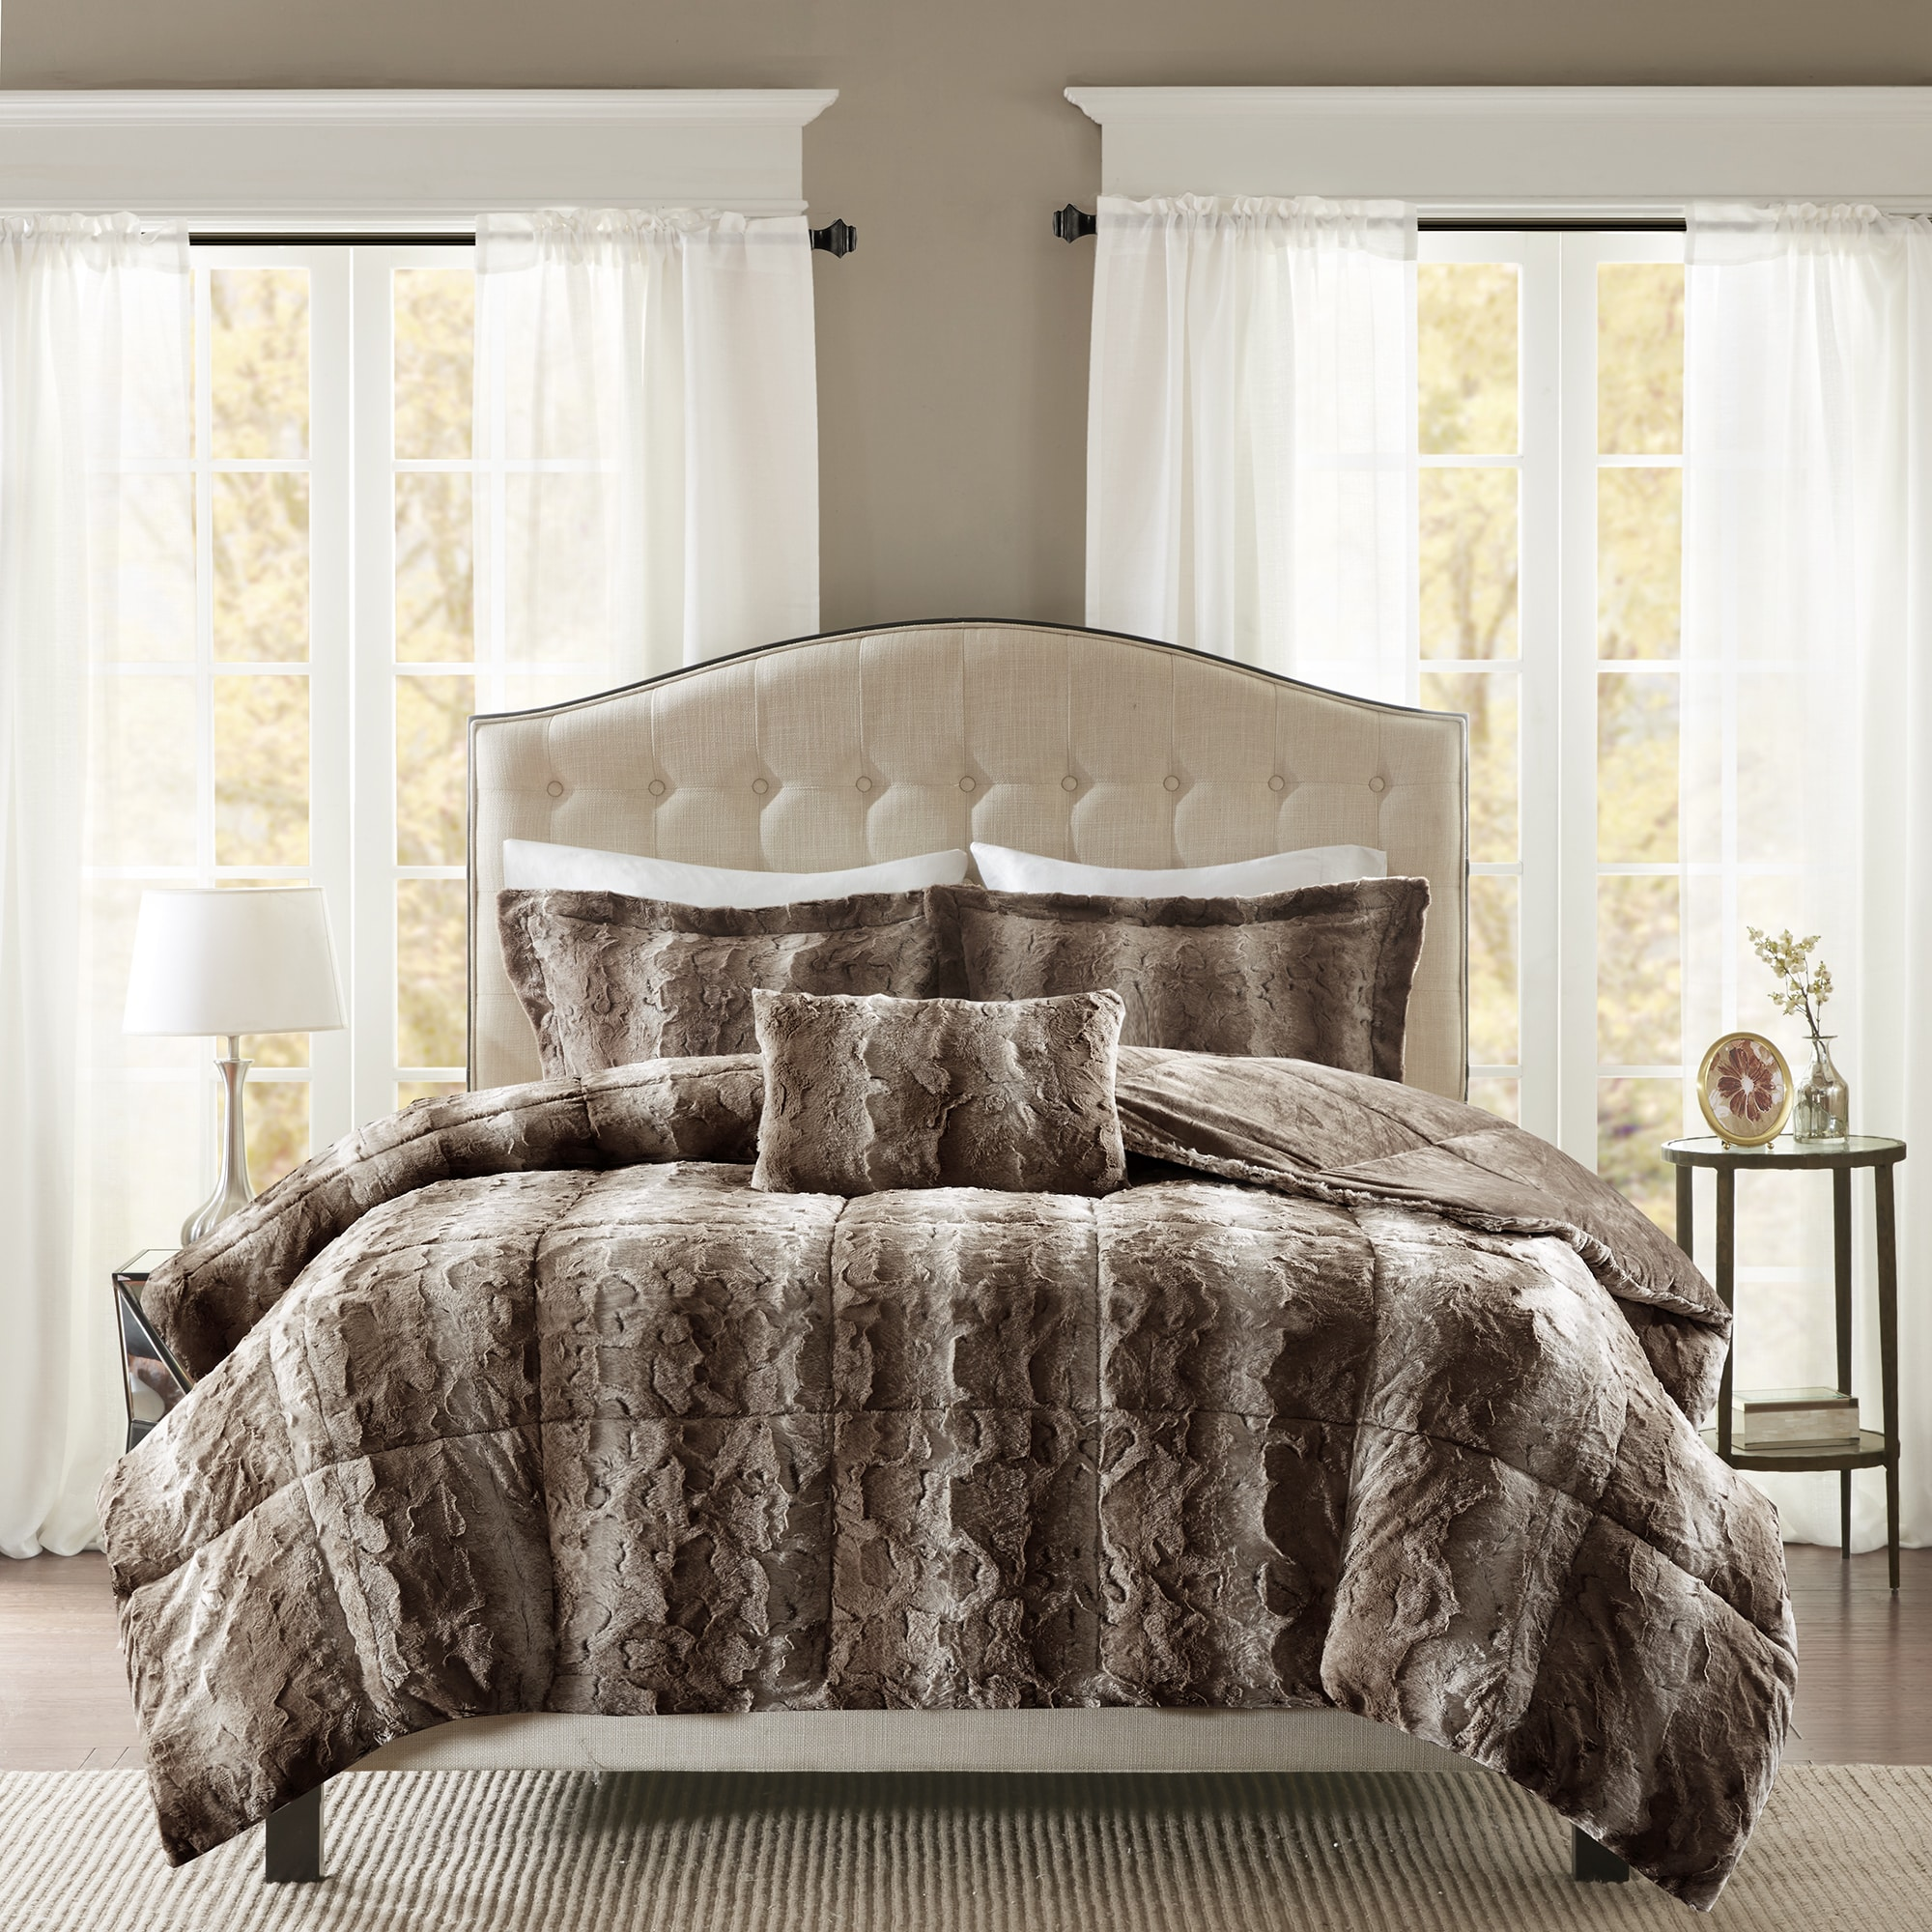 com bedding bed pcs beautiful king size set printed shopfils product queen butterfly